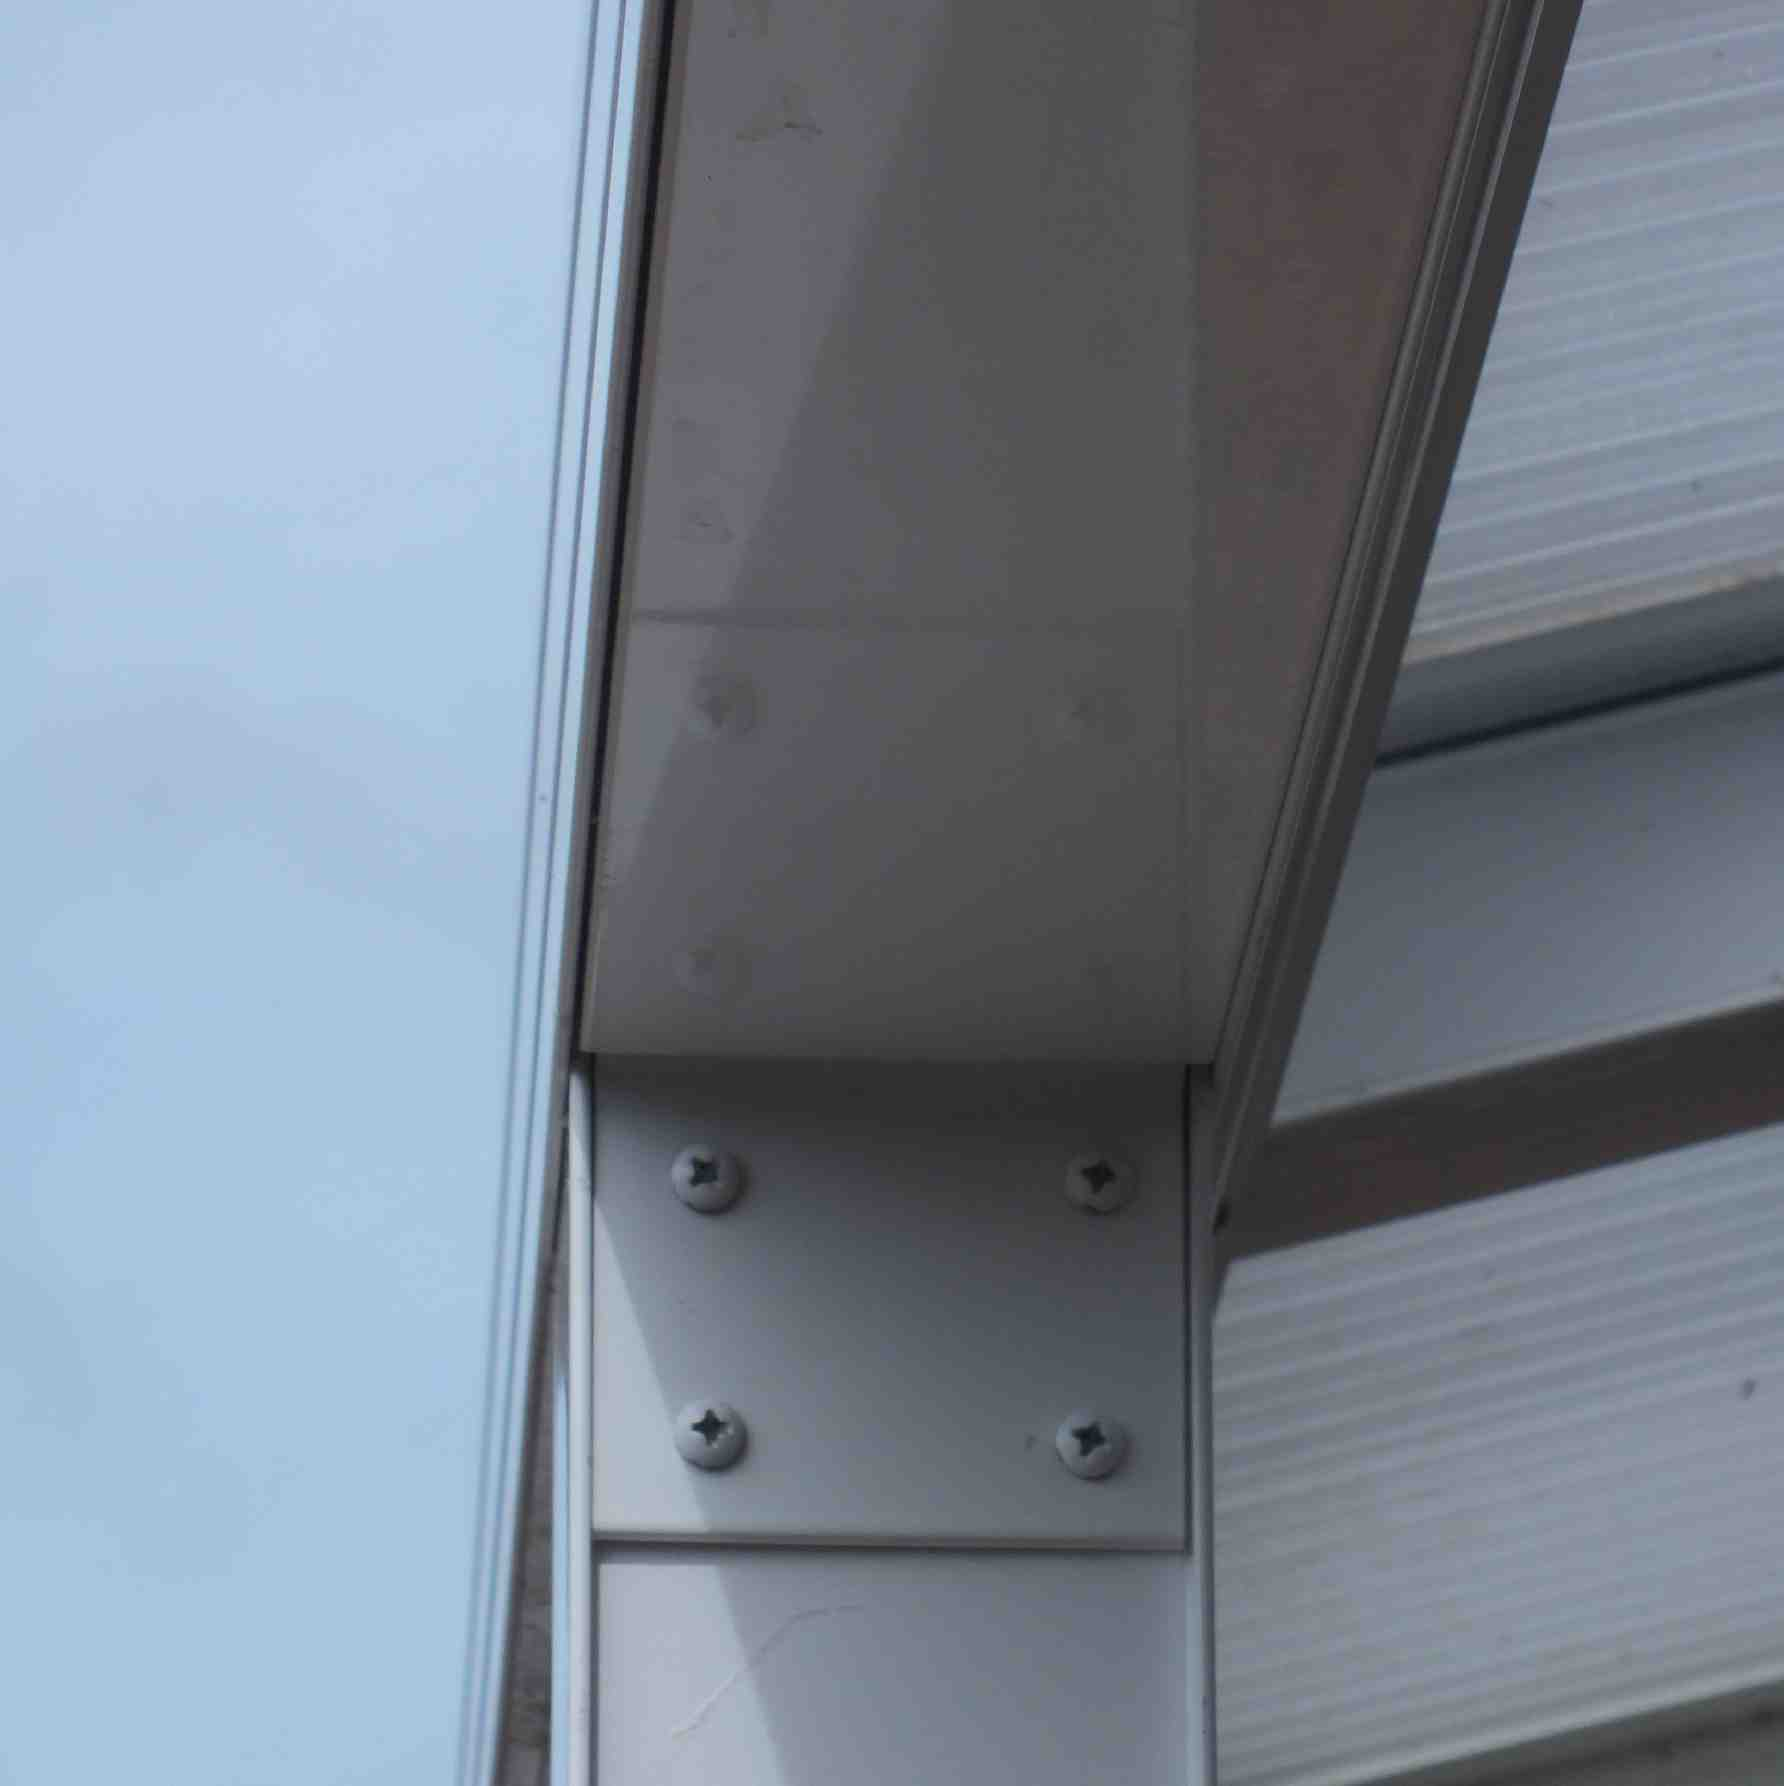 Affordable Omega Verandah with 6mm Glass Clear Plate Polycarbonate Glazing - 7.7m (W) x 3.5m (P), (4) Supporting Posts